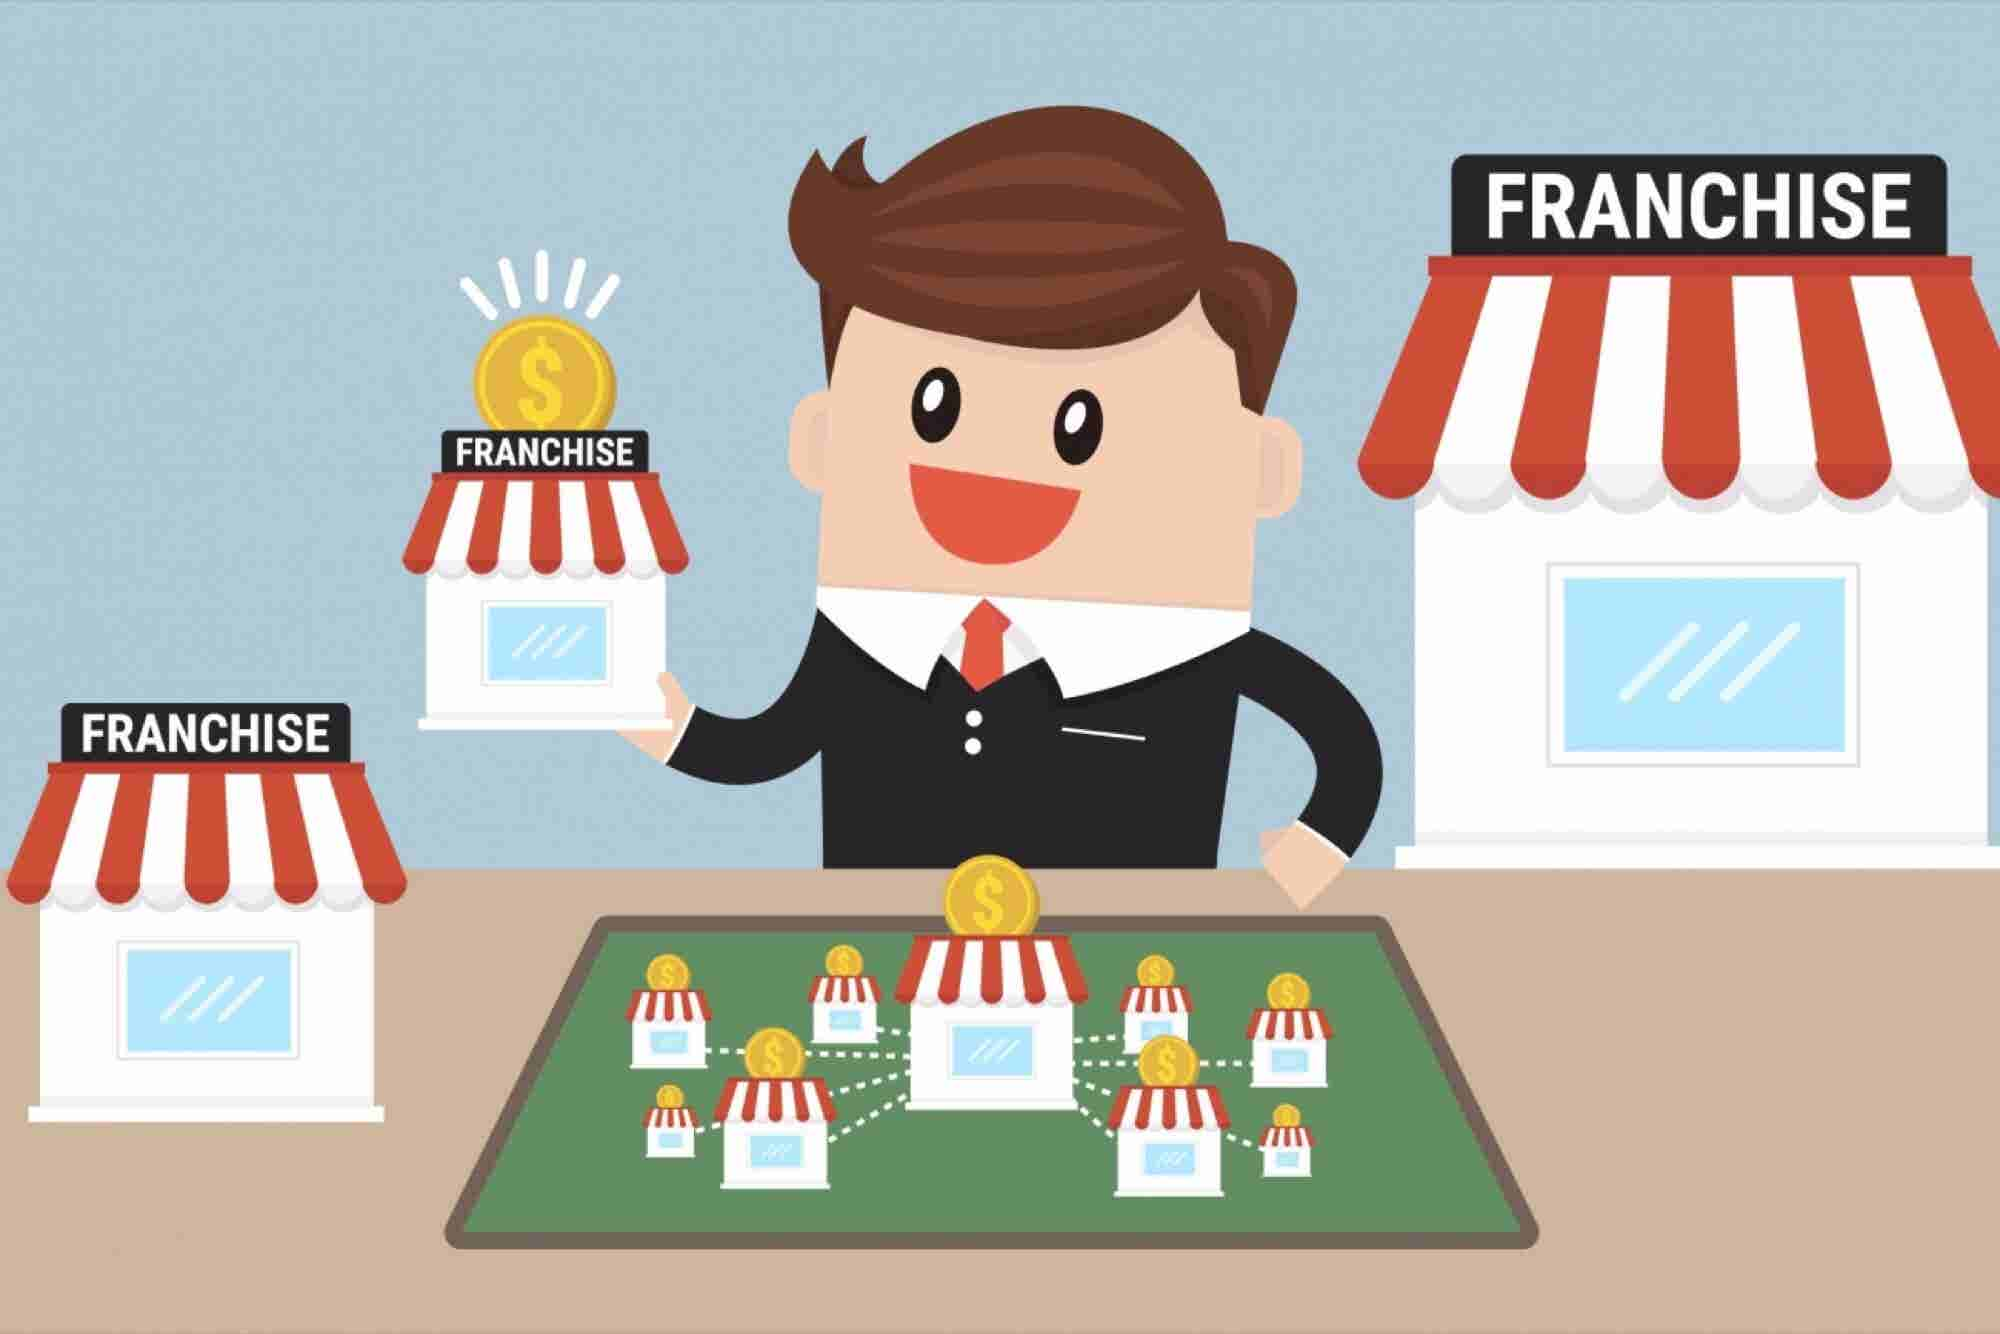 Franchisees Can Avoid These to run their Franchise Business Well